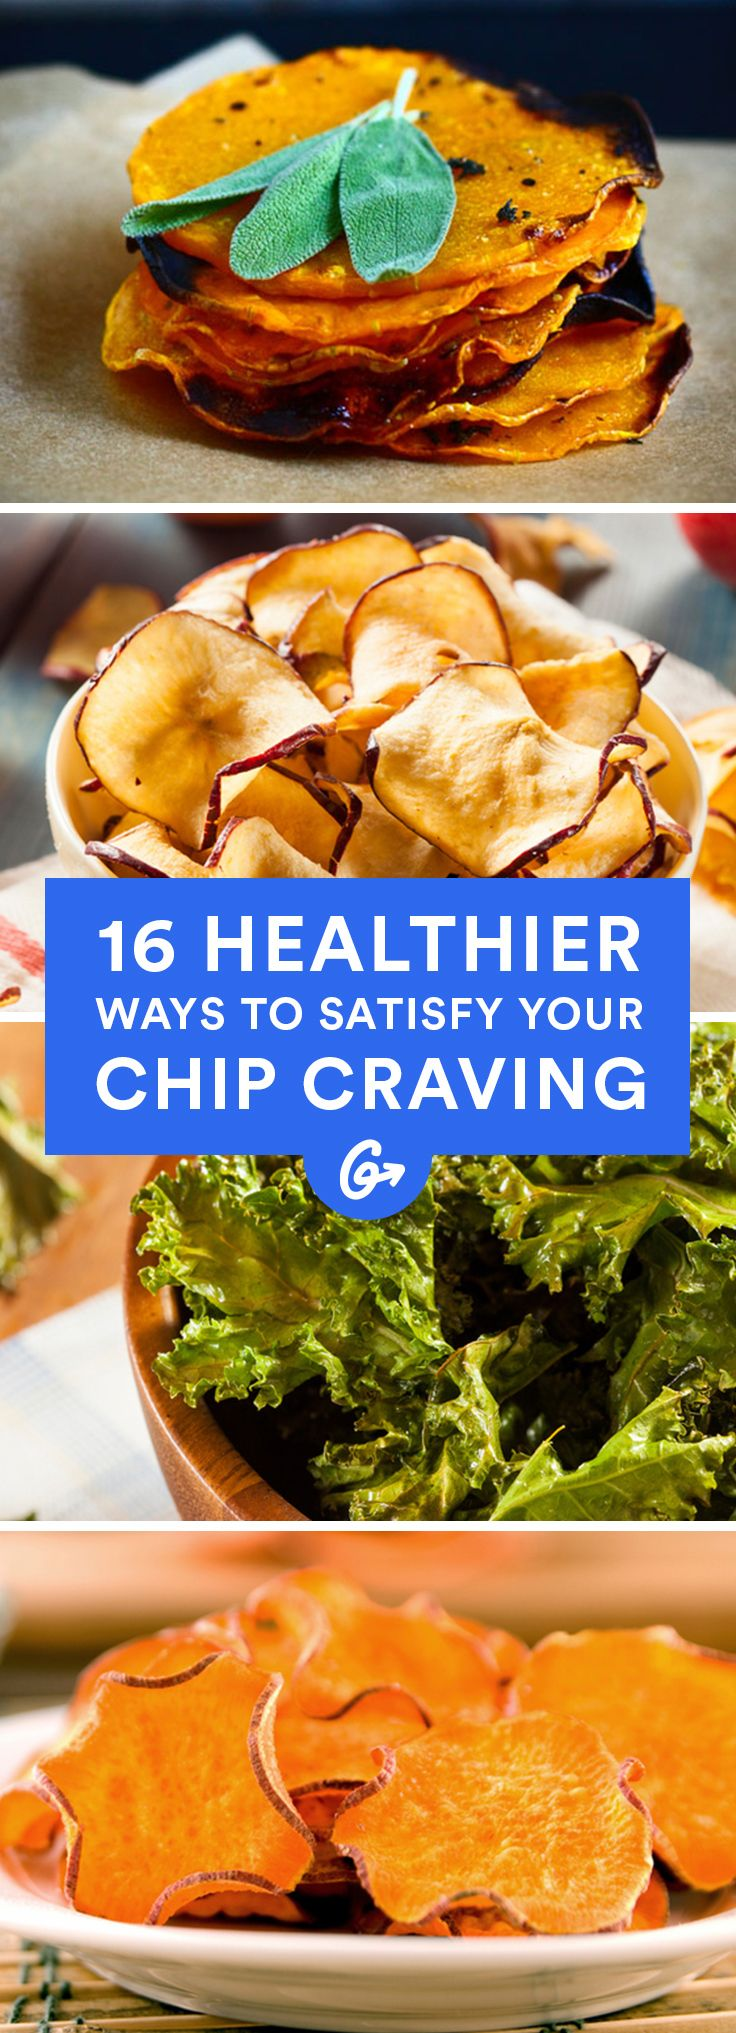 All it takes is some slicing, rubbing in oil, baking, and our favorite part: munching. #healthy #chip #recipes http://greatist.com/health/healthy-chip-alternatives